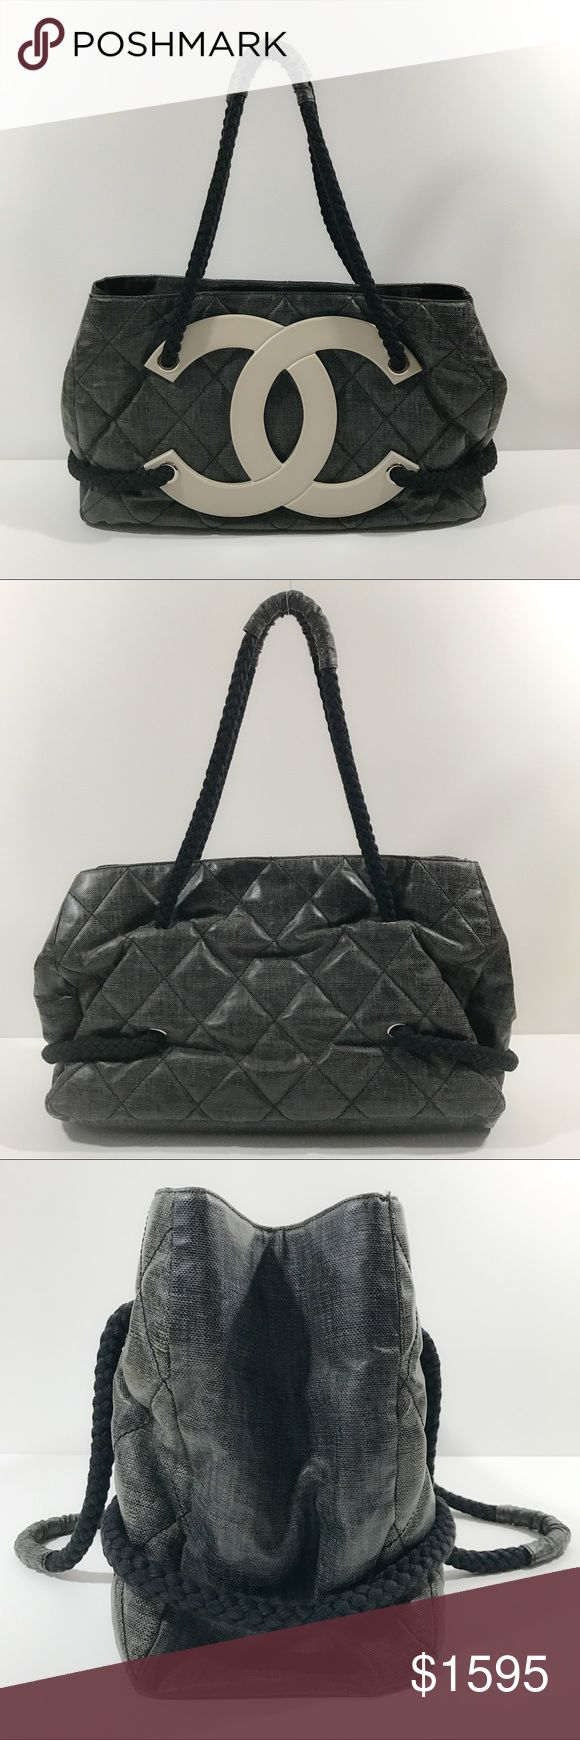 Authentic Chanel Coated Canvas Large CC Beach Tote In very good condition. Some creasing to coated canvas exterior, some slouching of shape. Inside is pristine. Comes with detachable interior compartment and dust bag. Very big and perfect as daily bag or beach bag. It easily carries a large beach towel and other essentials. NO TRADE CHANEL Bags Totes